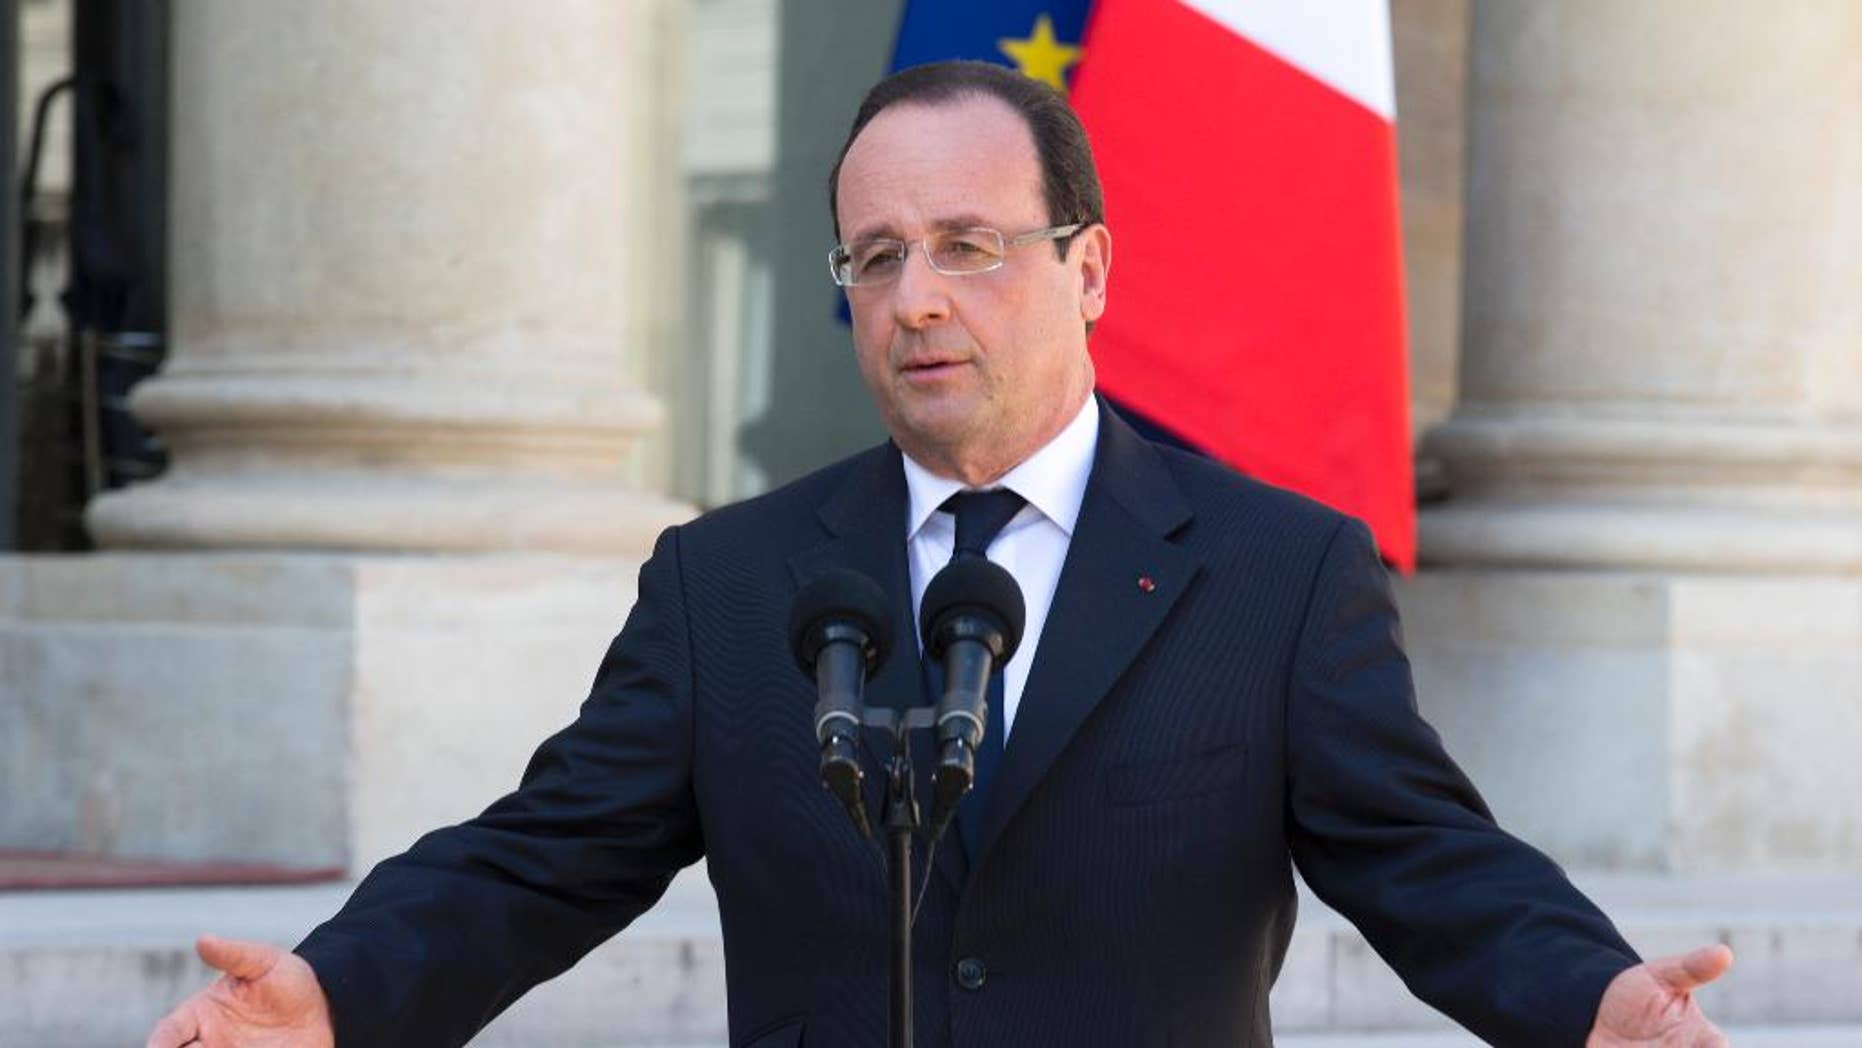 FILE - In this April 24, 2013 file photo, French President Francois Hollande talks to the media after the weekly cabinet meeting in Paris. The most unpopular president in France's modern history, Francois Hollande, is preparing the ground for a potential re-election bid. The 61-year-old Socialist president has not formally announced his intention to run, but more and more signs are emerging that he's in campaign mode. The government set the dates this week for the next election _ two rounds on April 23 and May 7, 2017. (AP Photo/Jacques Brinon, File)